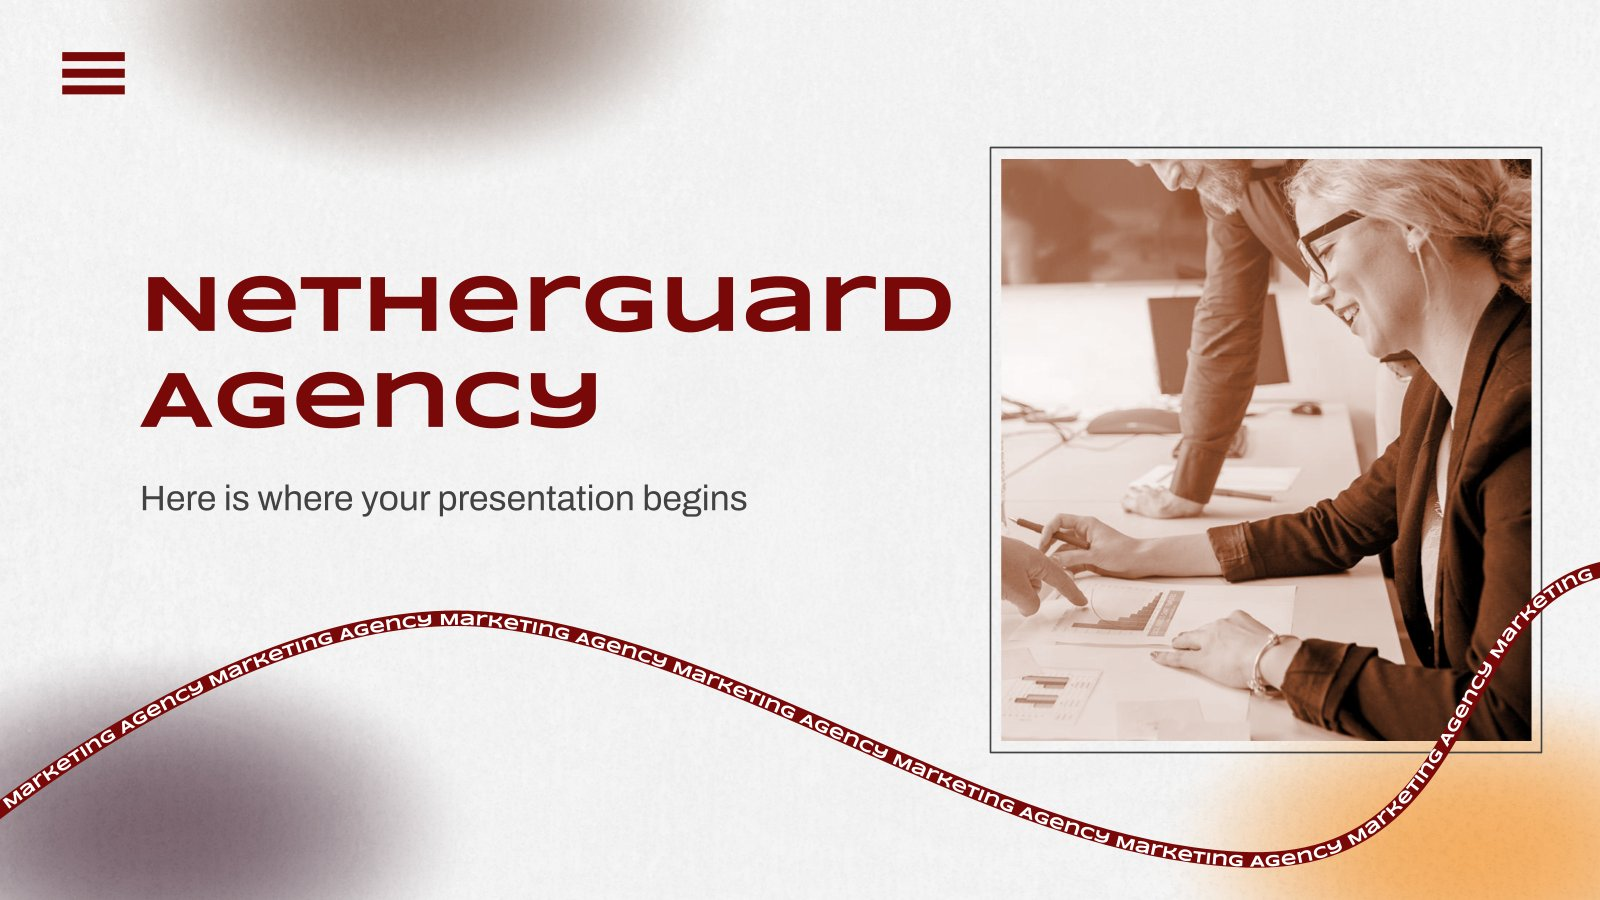 Netherguard Agency presentation template